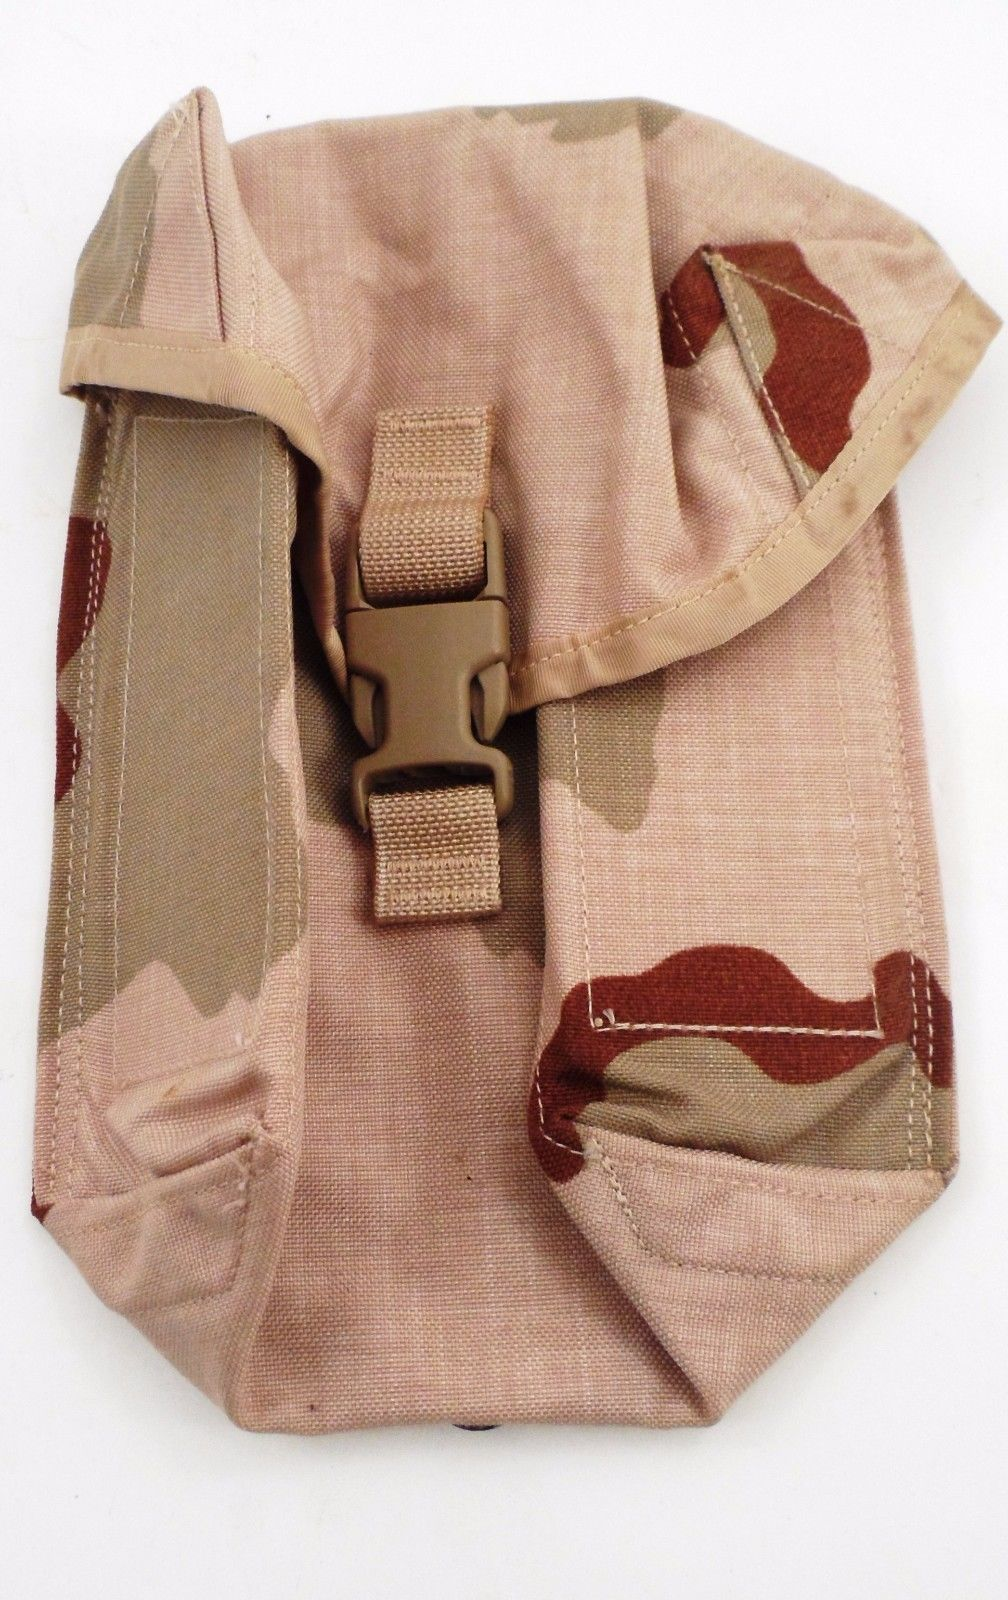 ARMY ISSUED 100 RD MOLLE II ACU SAW GUNNER TACTICAL POUCH NEW